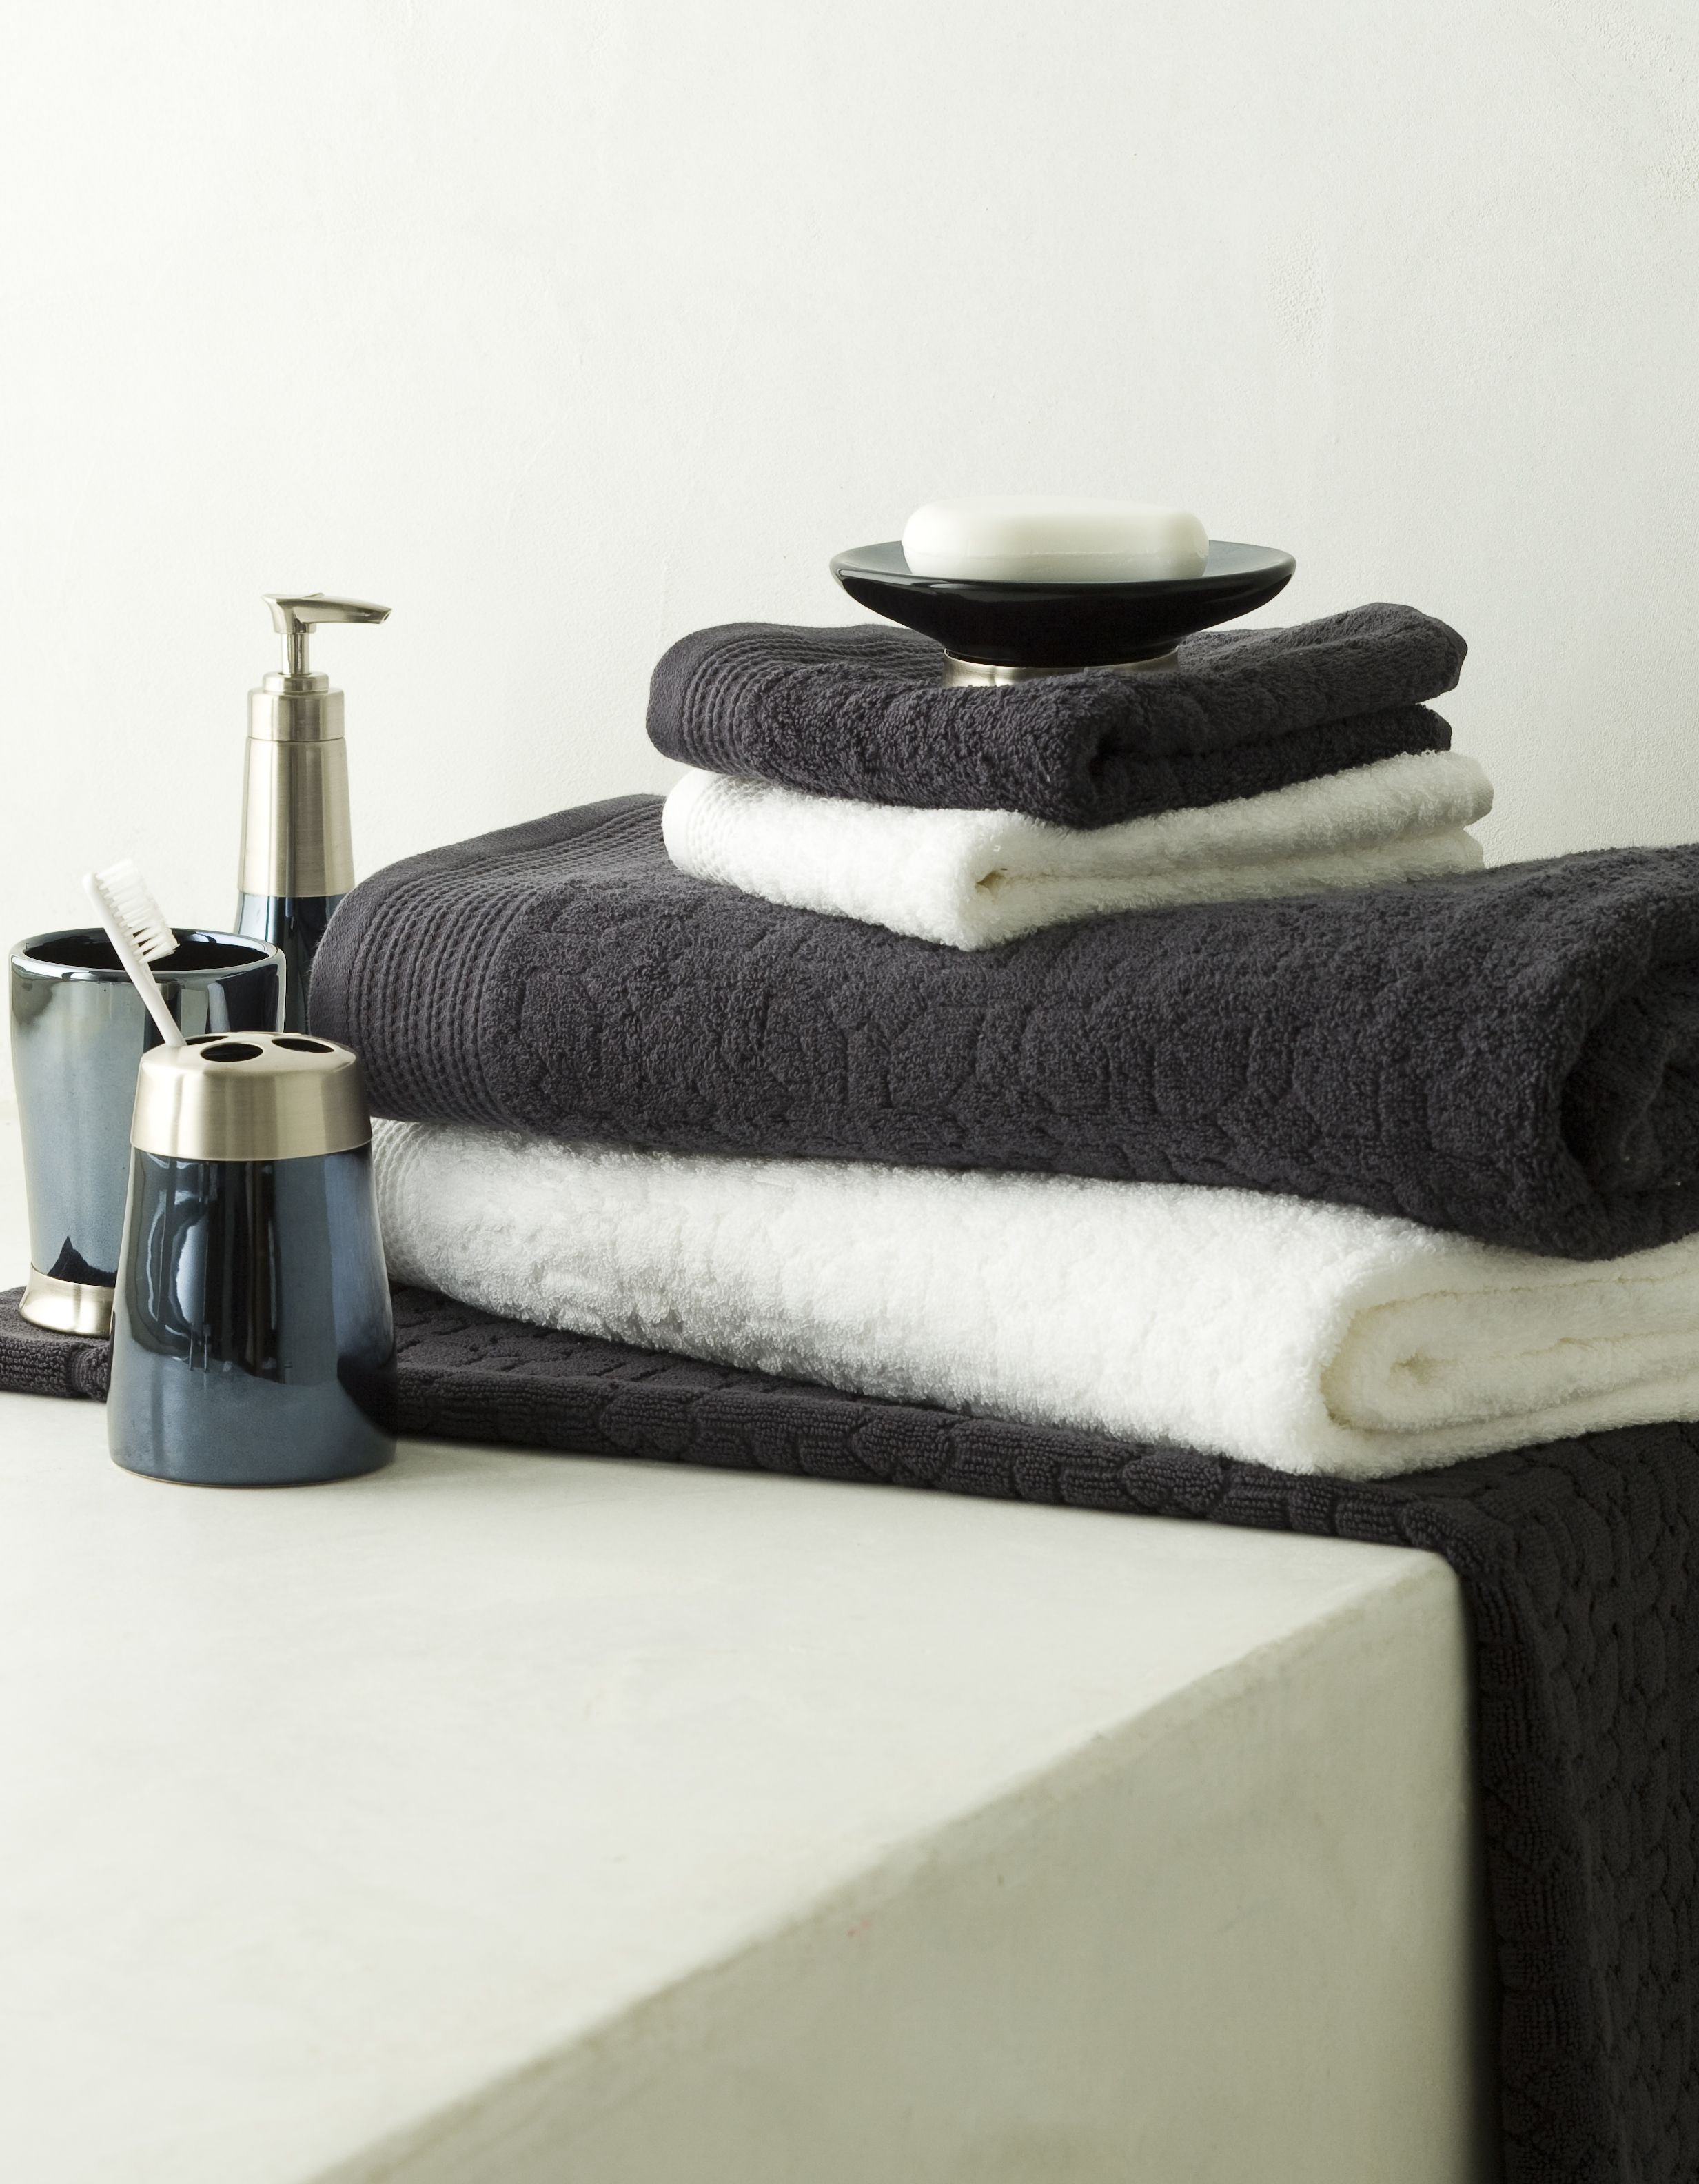 Coordinate your bathroom towels and accessories for Coordinating bathroom accessories